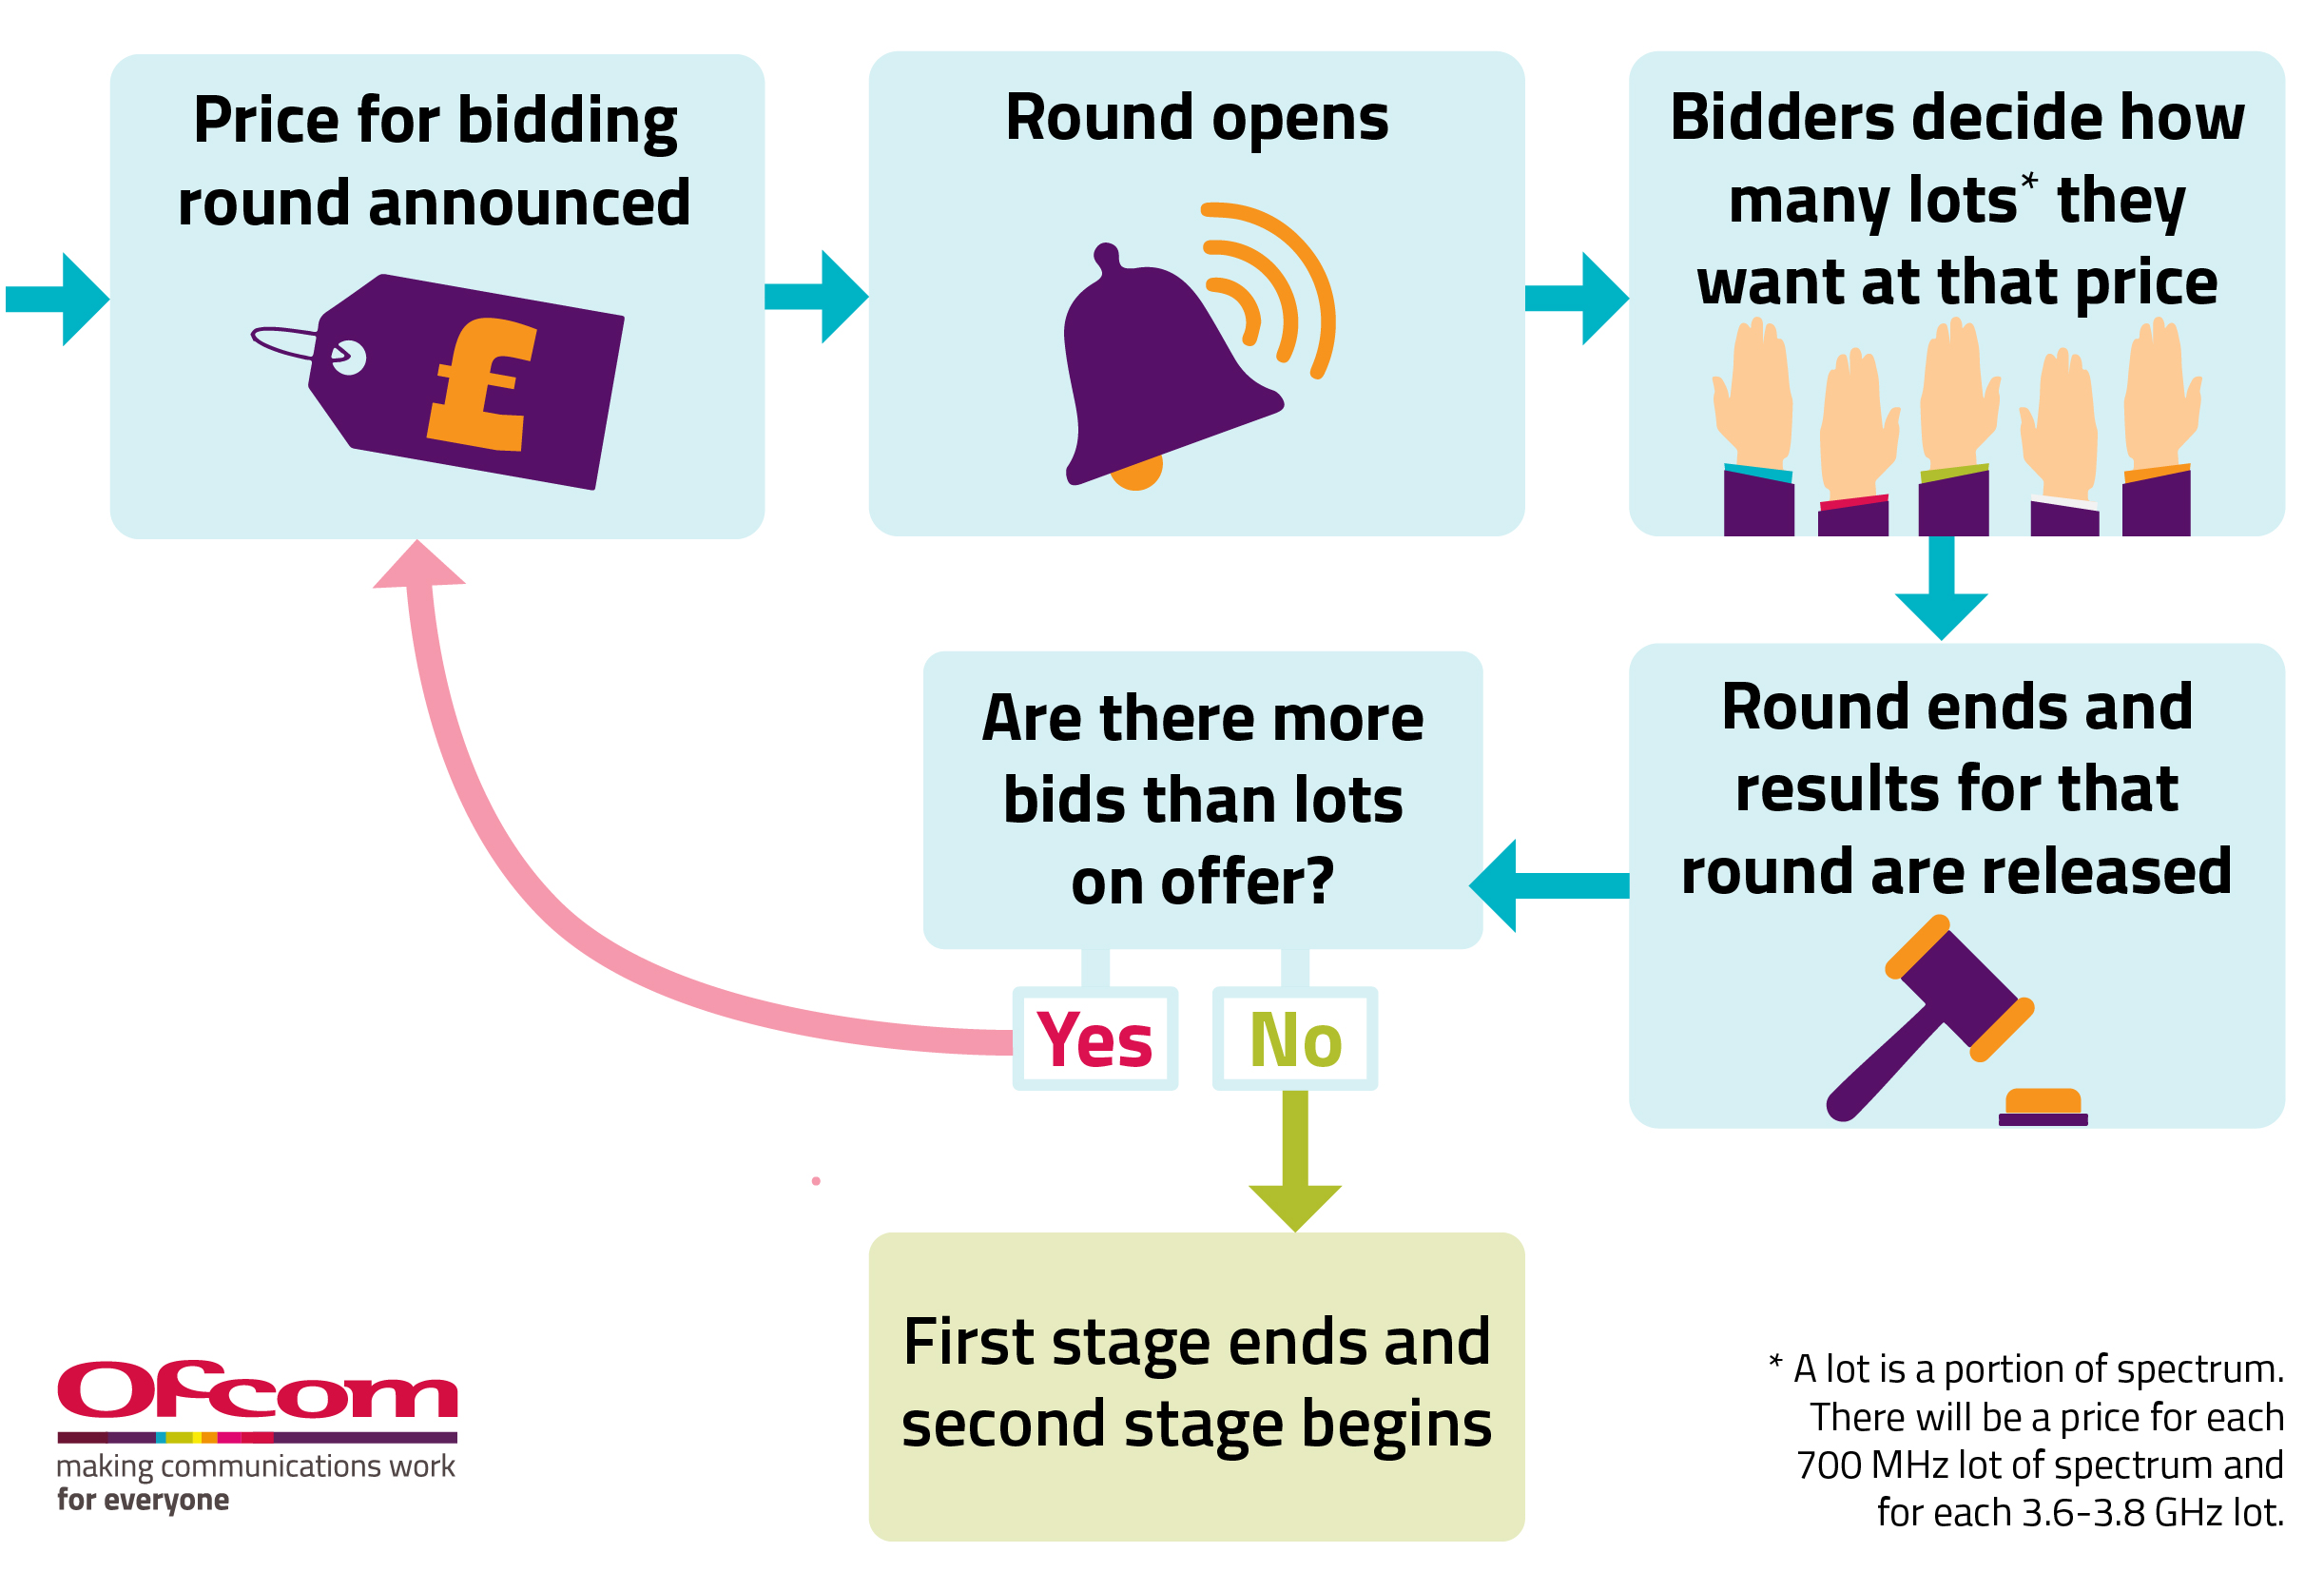 An overview of the auction process. Once the price for the bidding round is announced, the round opens and bidders decide how many lots they want at that price. The round ends and results for that round are released. If there are more bids than lots on offer, the process repeats. Otherwise the first stage ends, and second stage begins.